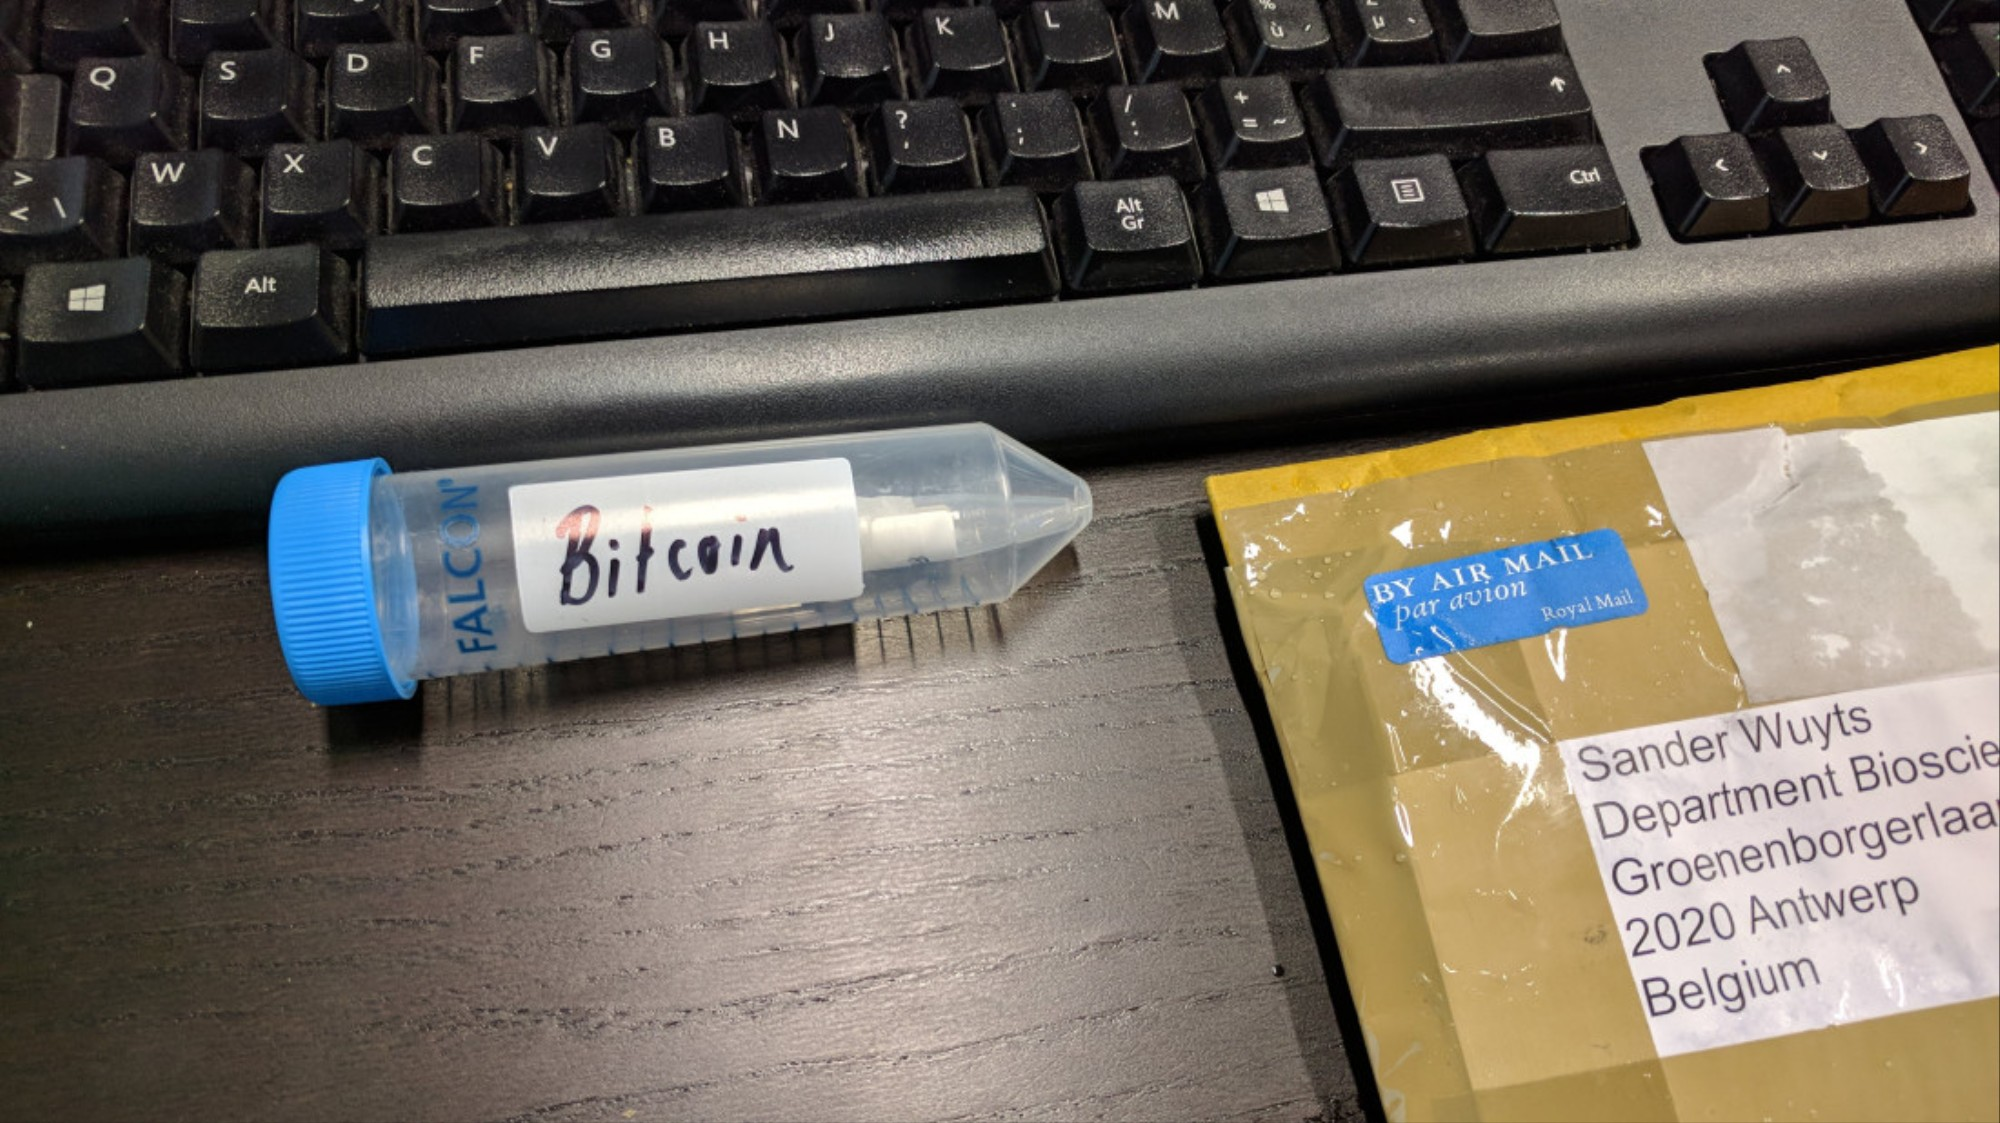 A Piece of DNA Contained the Key to 1 Bitcoin and This Guy